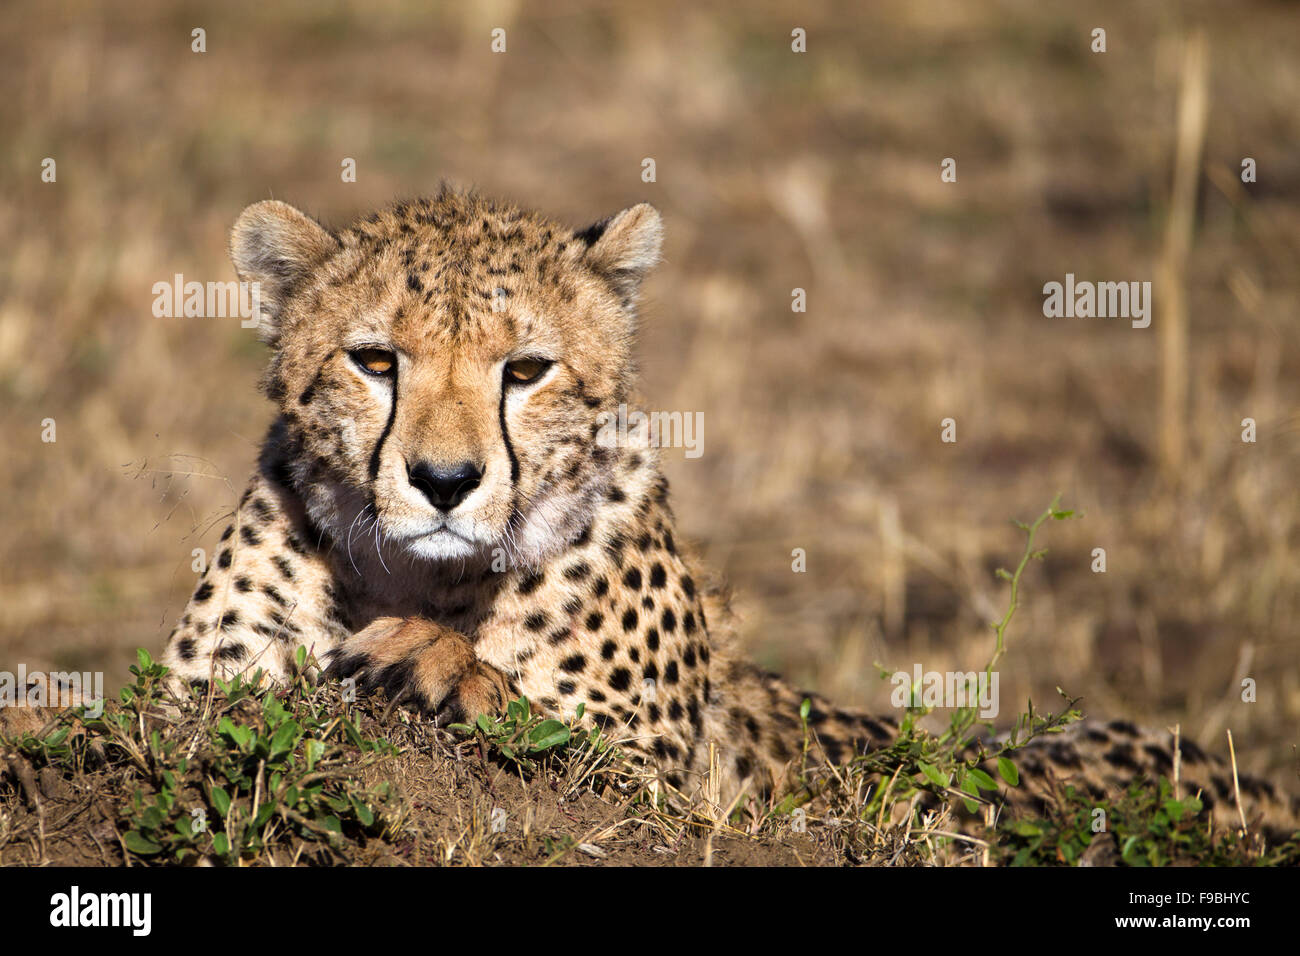 Cheetah with eyes on you. - Stock Image